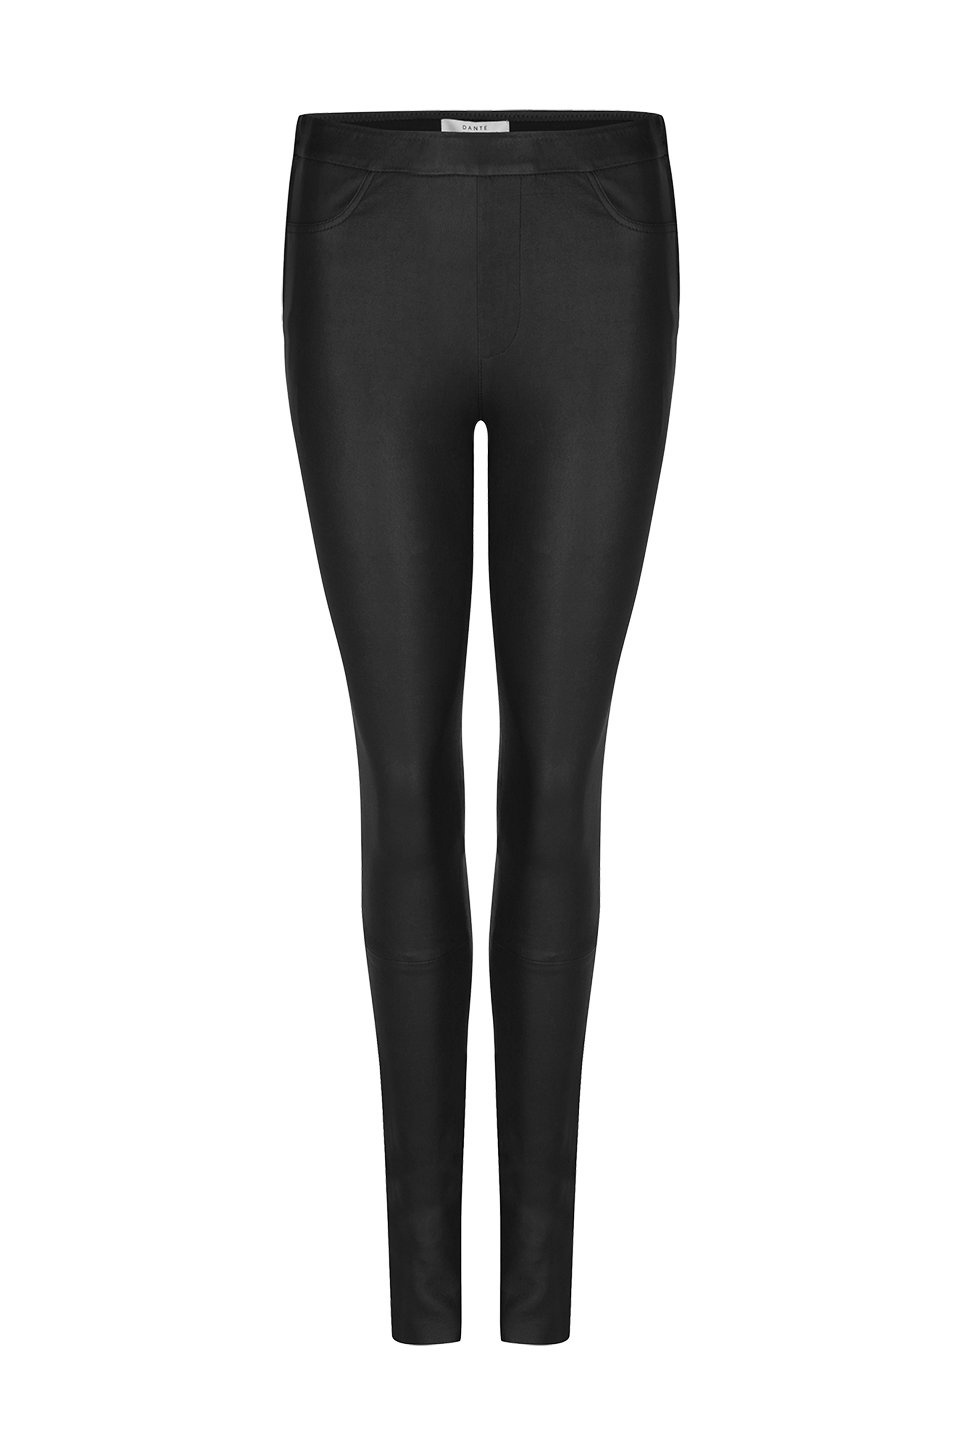 Campbell Leather Legging - Raven-1